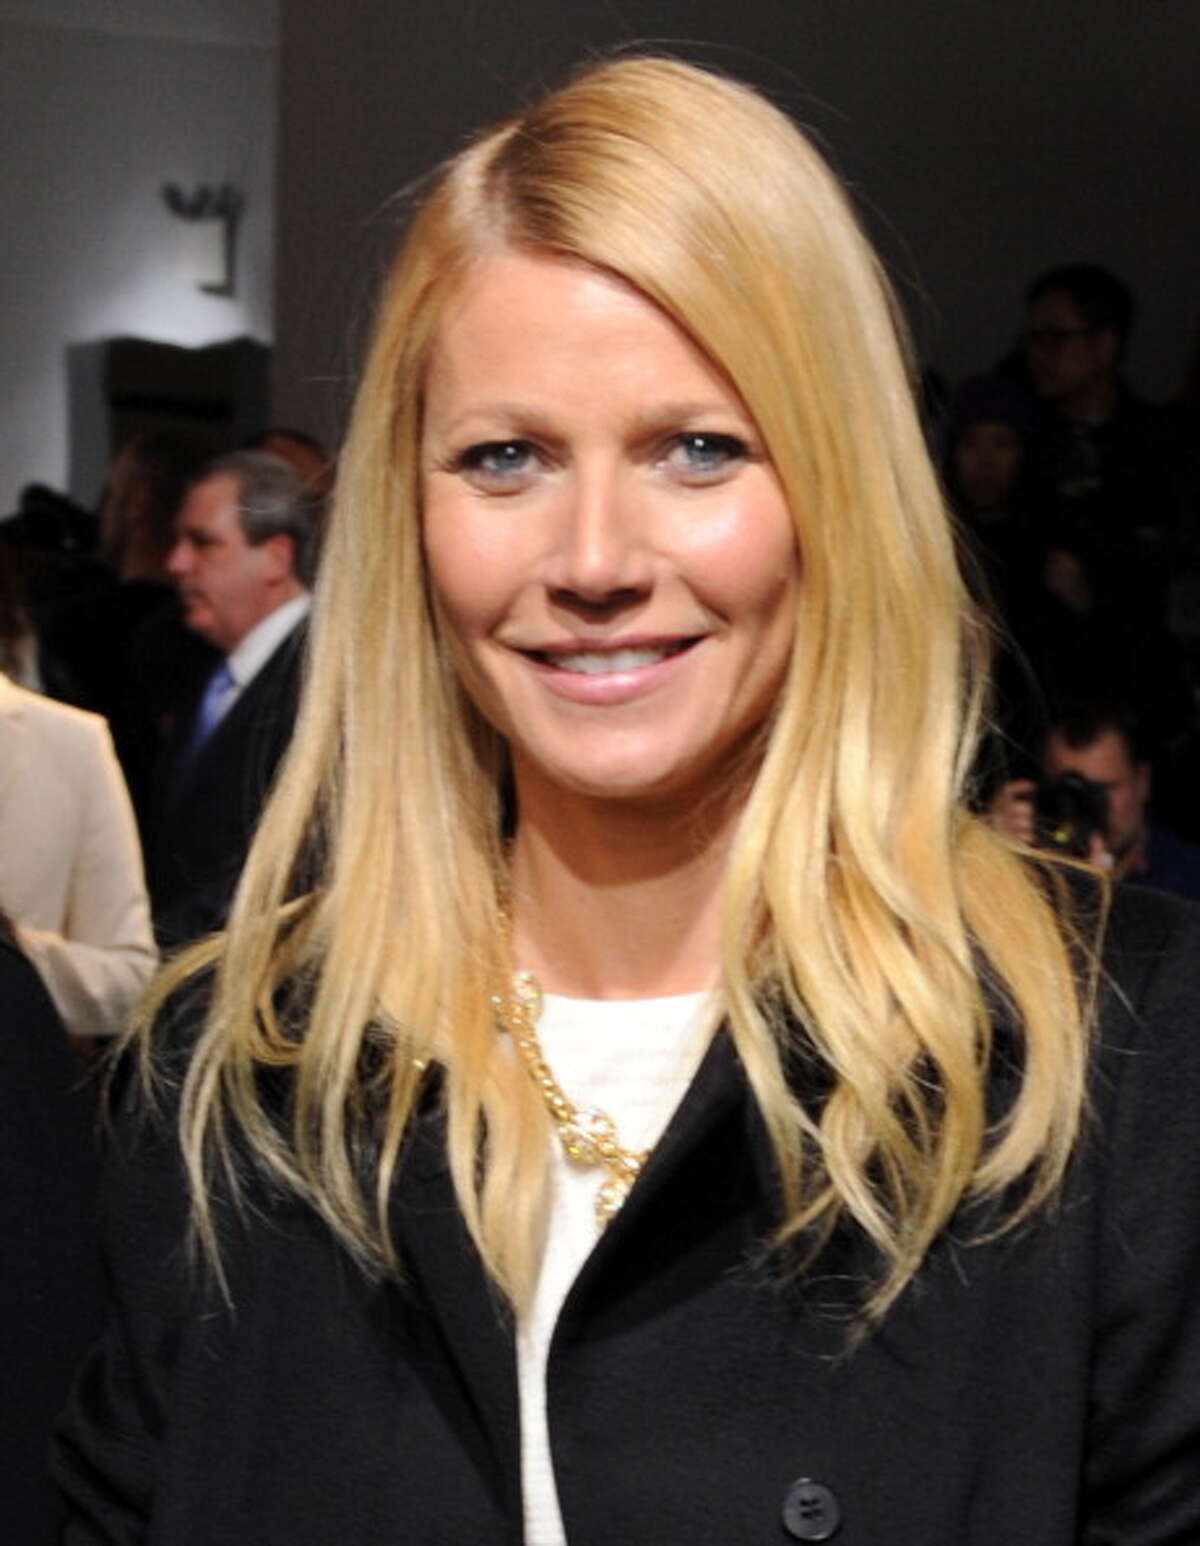 """2. Apple Doesn't Fall Far From the Tree Apparently, Paltrow's eldest child, Apple, resembles her mother's """"Royal Tenenbaums"""" character, Margo. During the interview, she traipses into the kitchen with eyeliner and a blunt bob."""